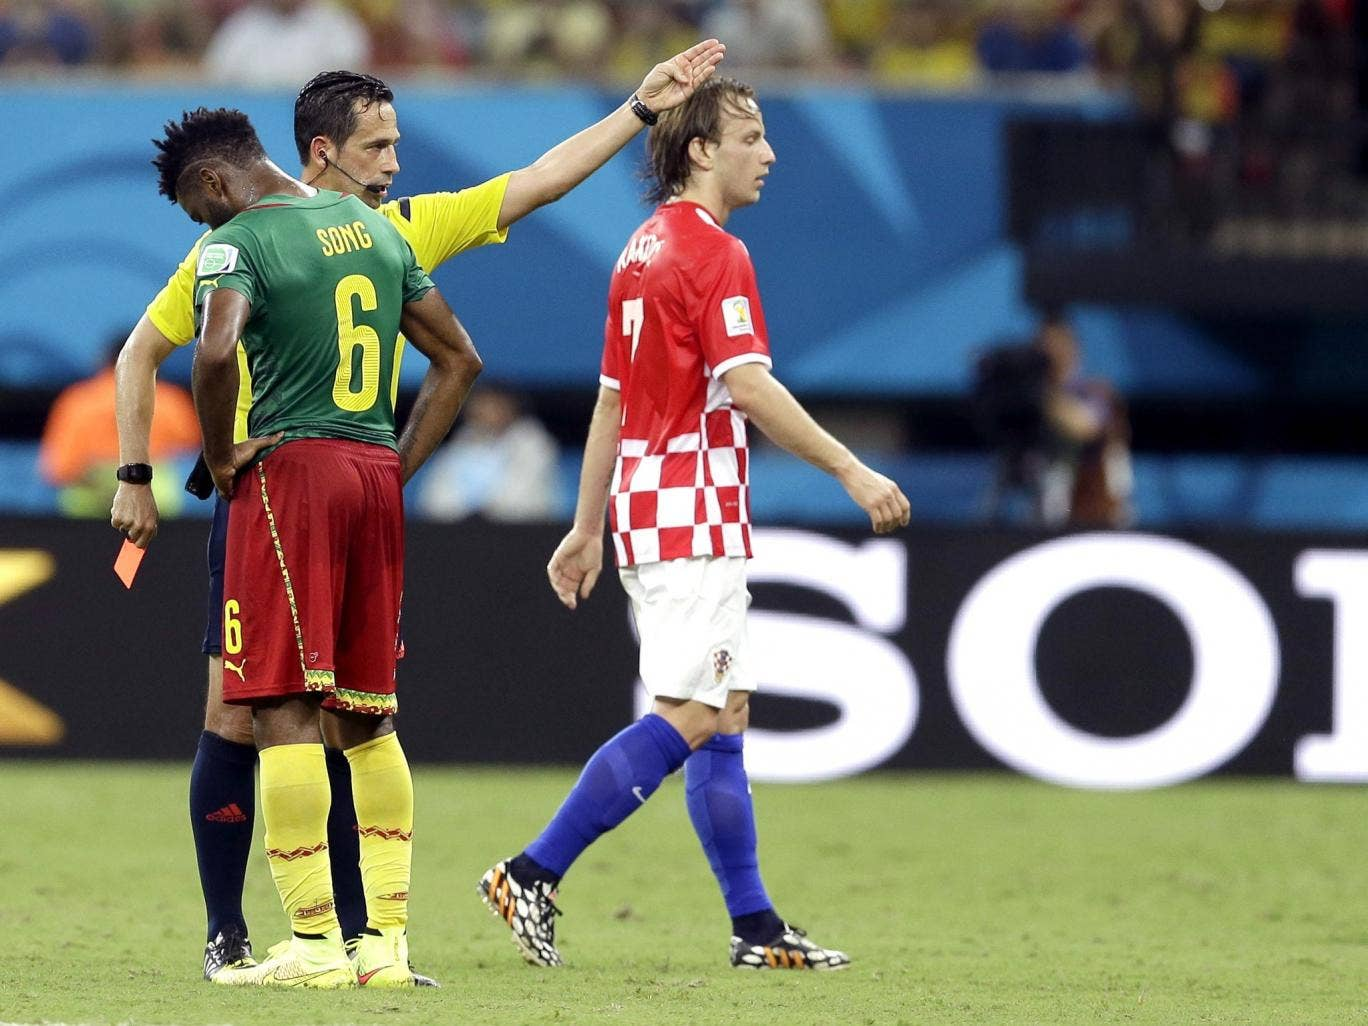 Cameroon's Alex Song is given a red card